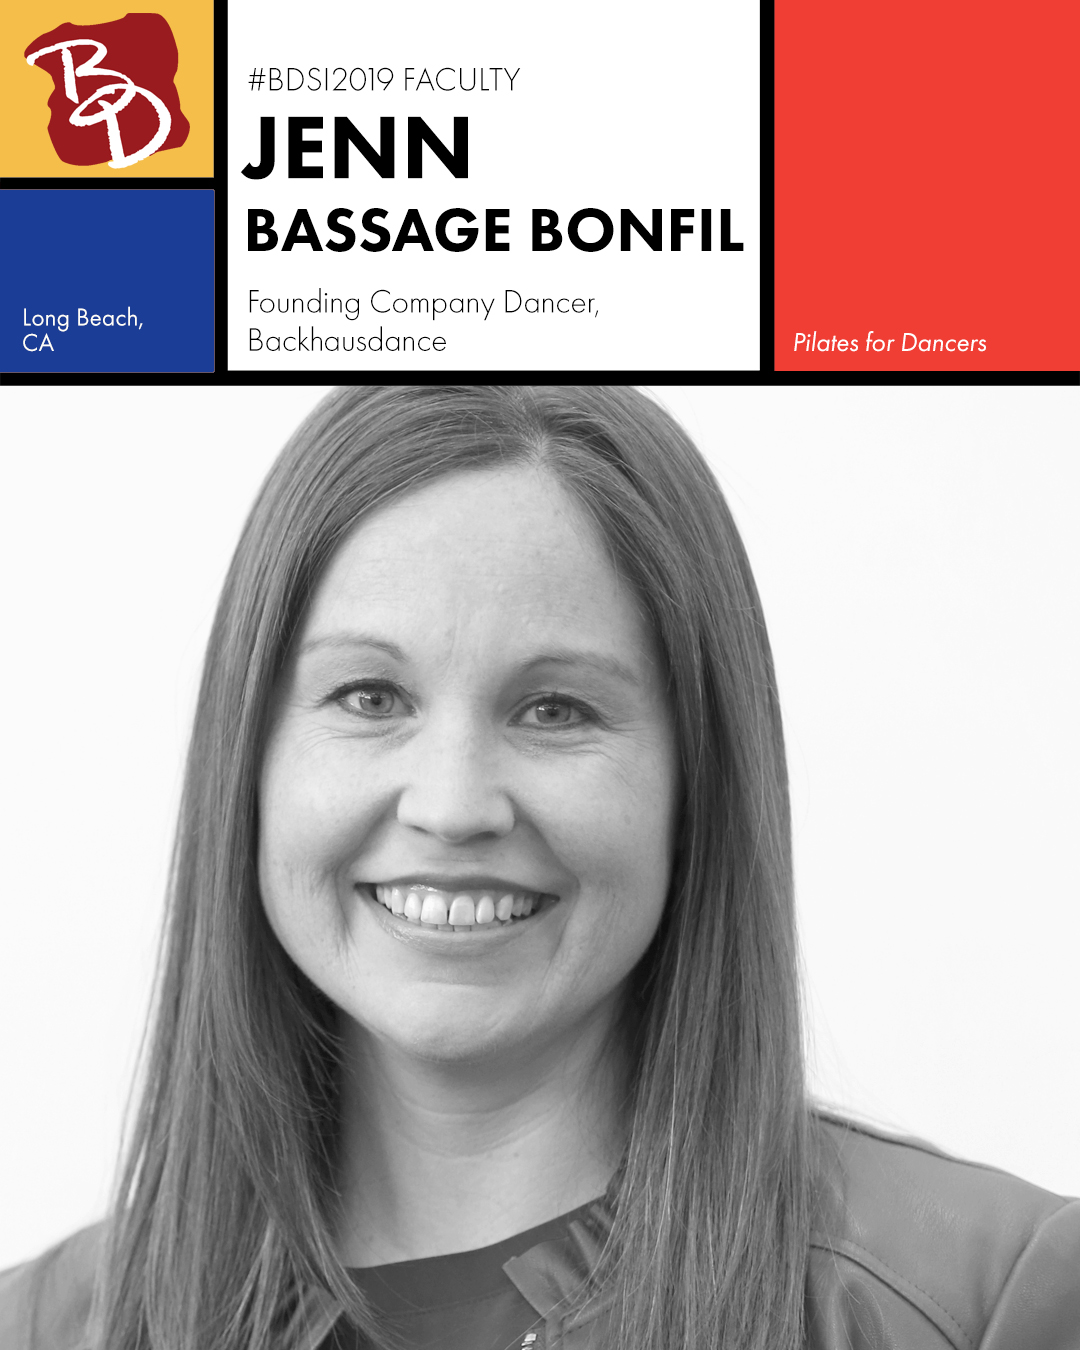 Faculty Announcement - Bassage Bonfil Jenn.jpg